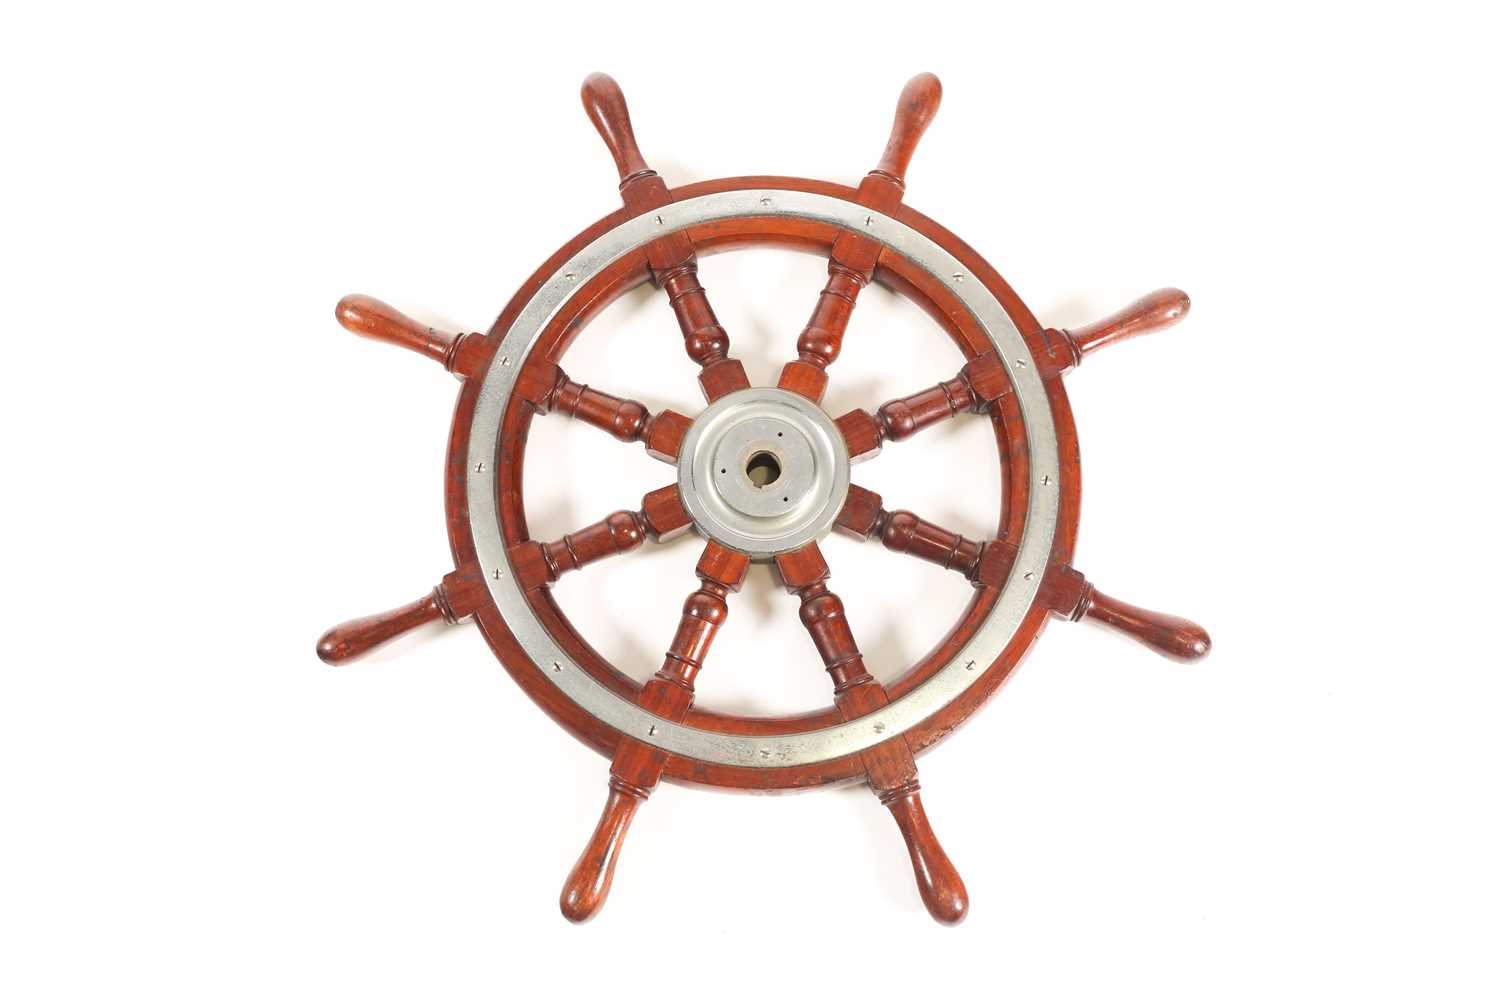 A teak wood ship's wheel with turned spindles and chromium-plated fitments. 77 cm diameter.Condition - Image 2 of 2